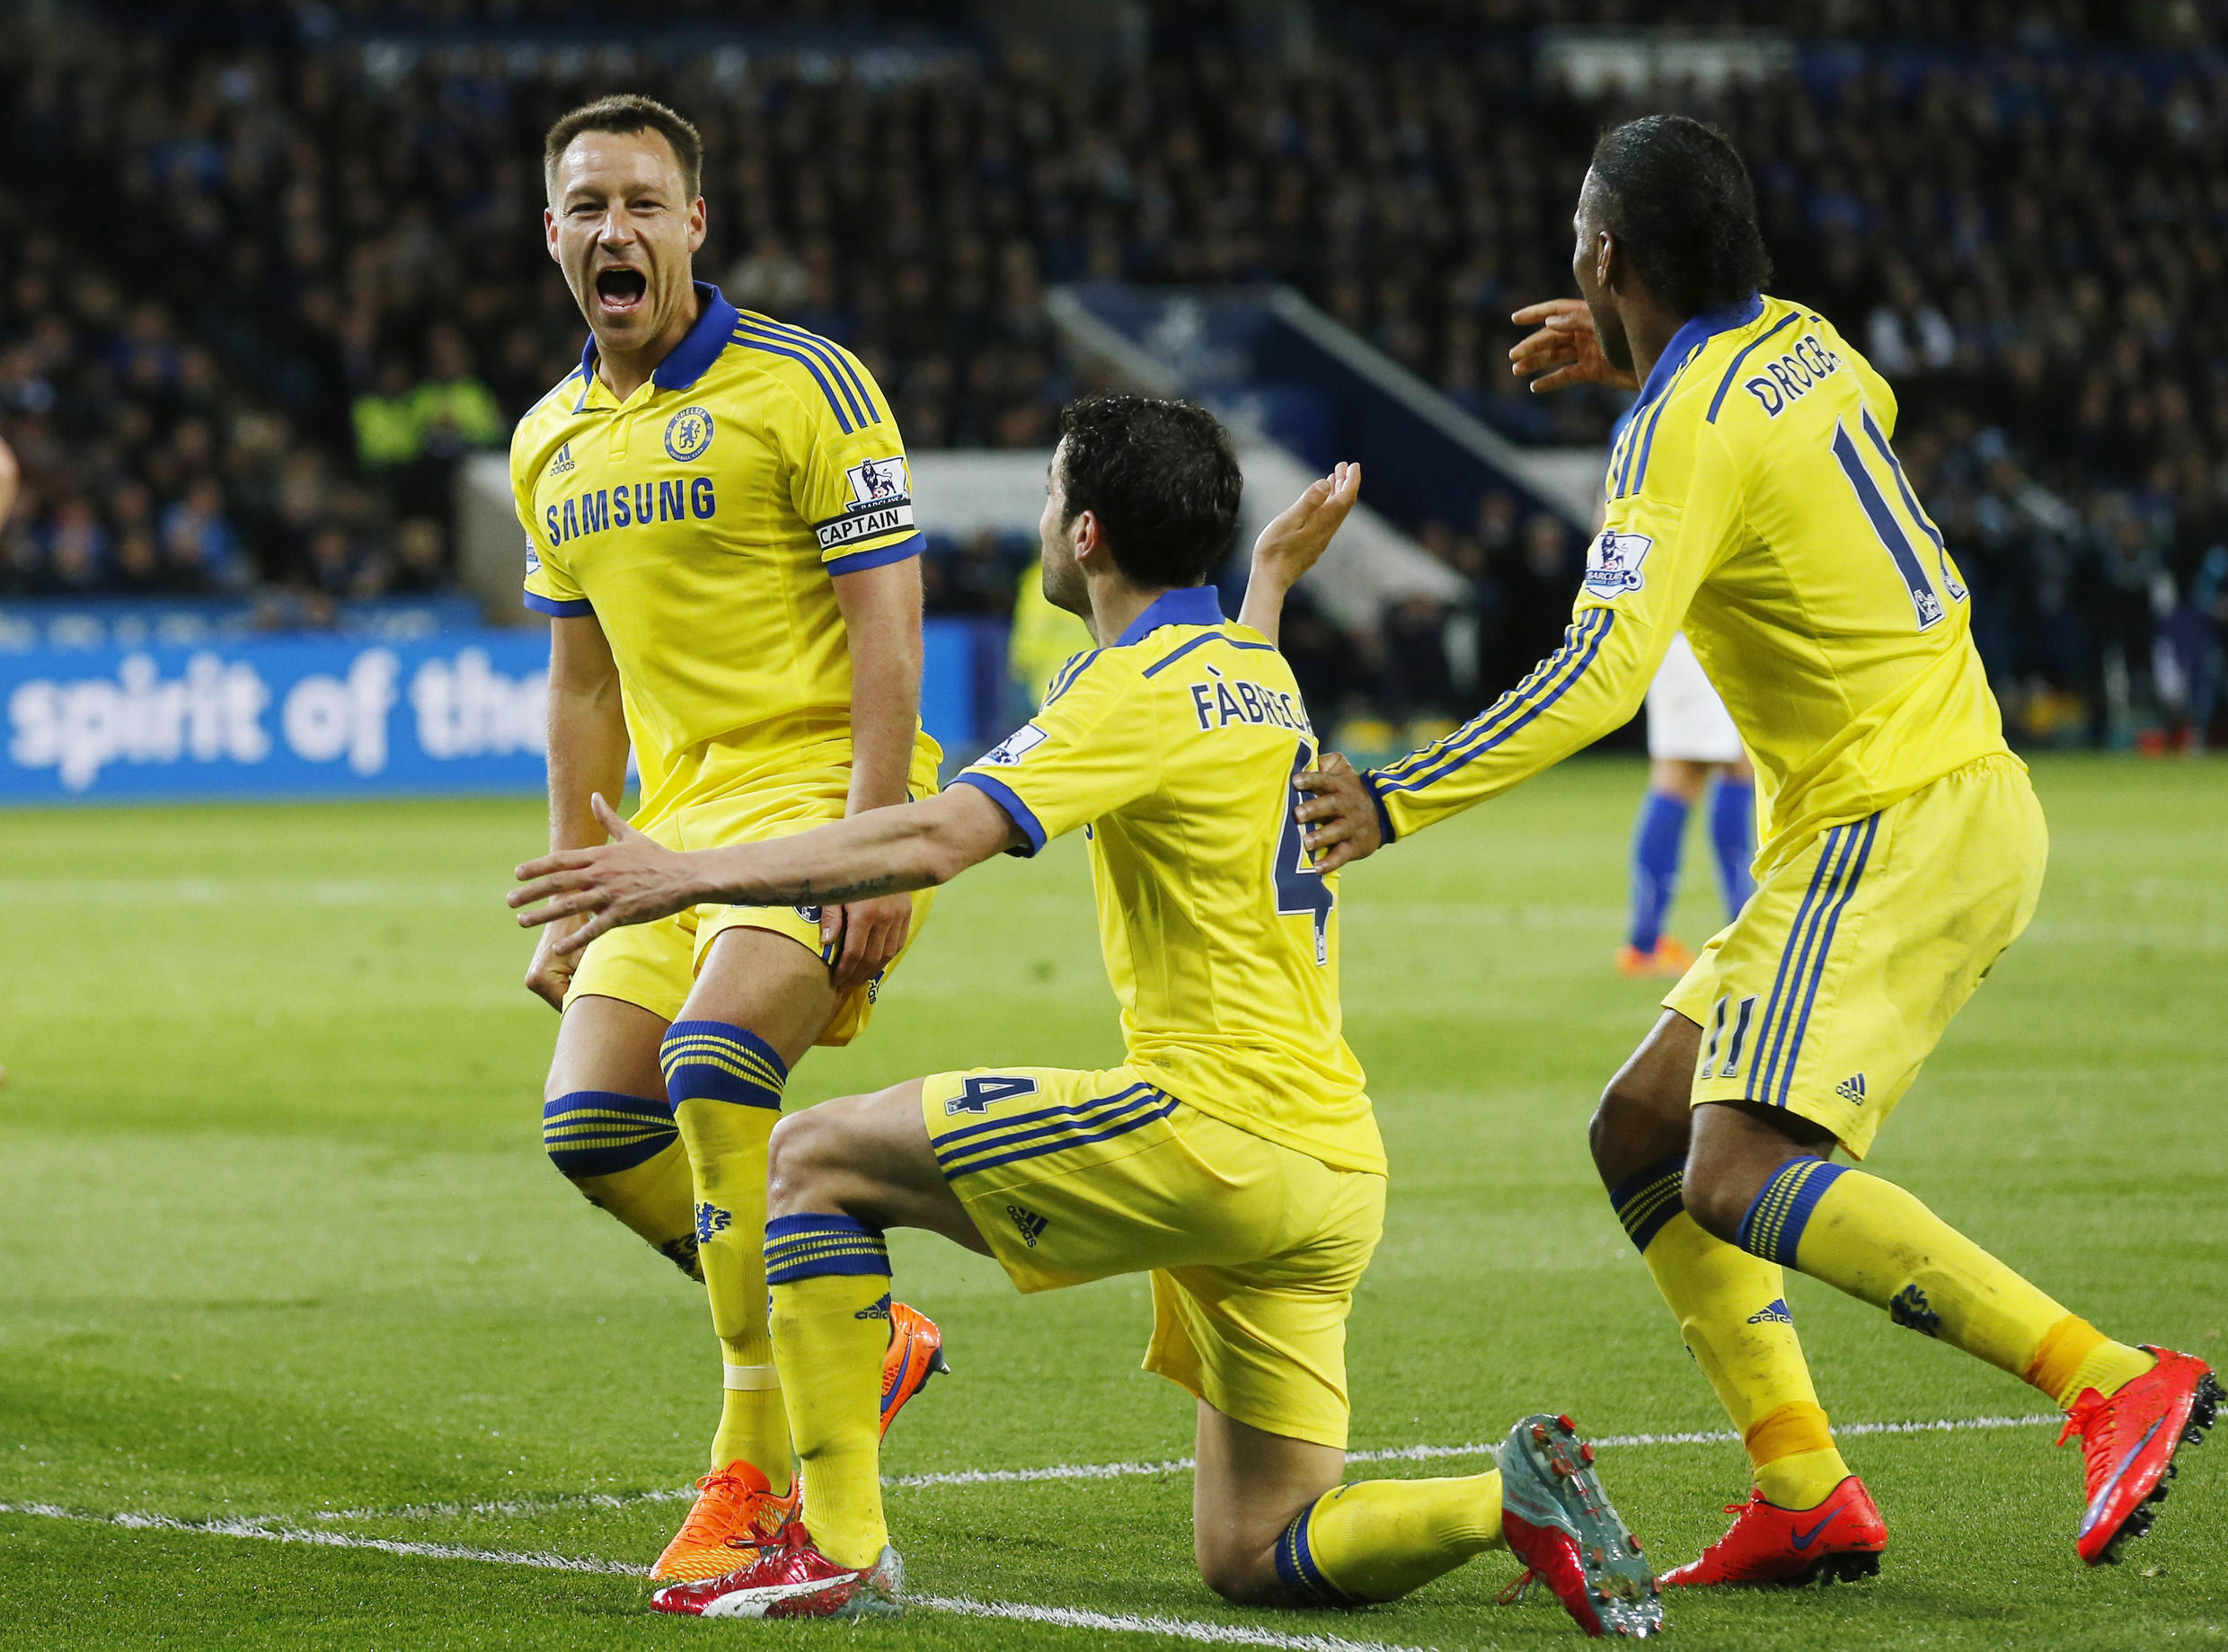 John Terry celebrates with team mates after scoring the second goal for Chelsea